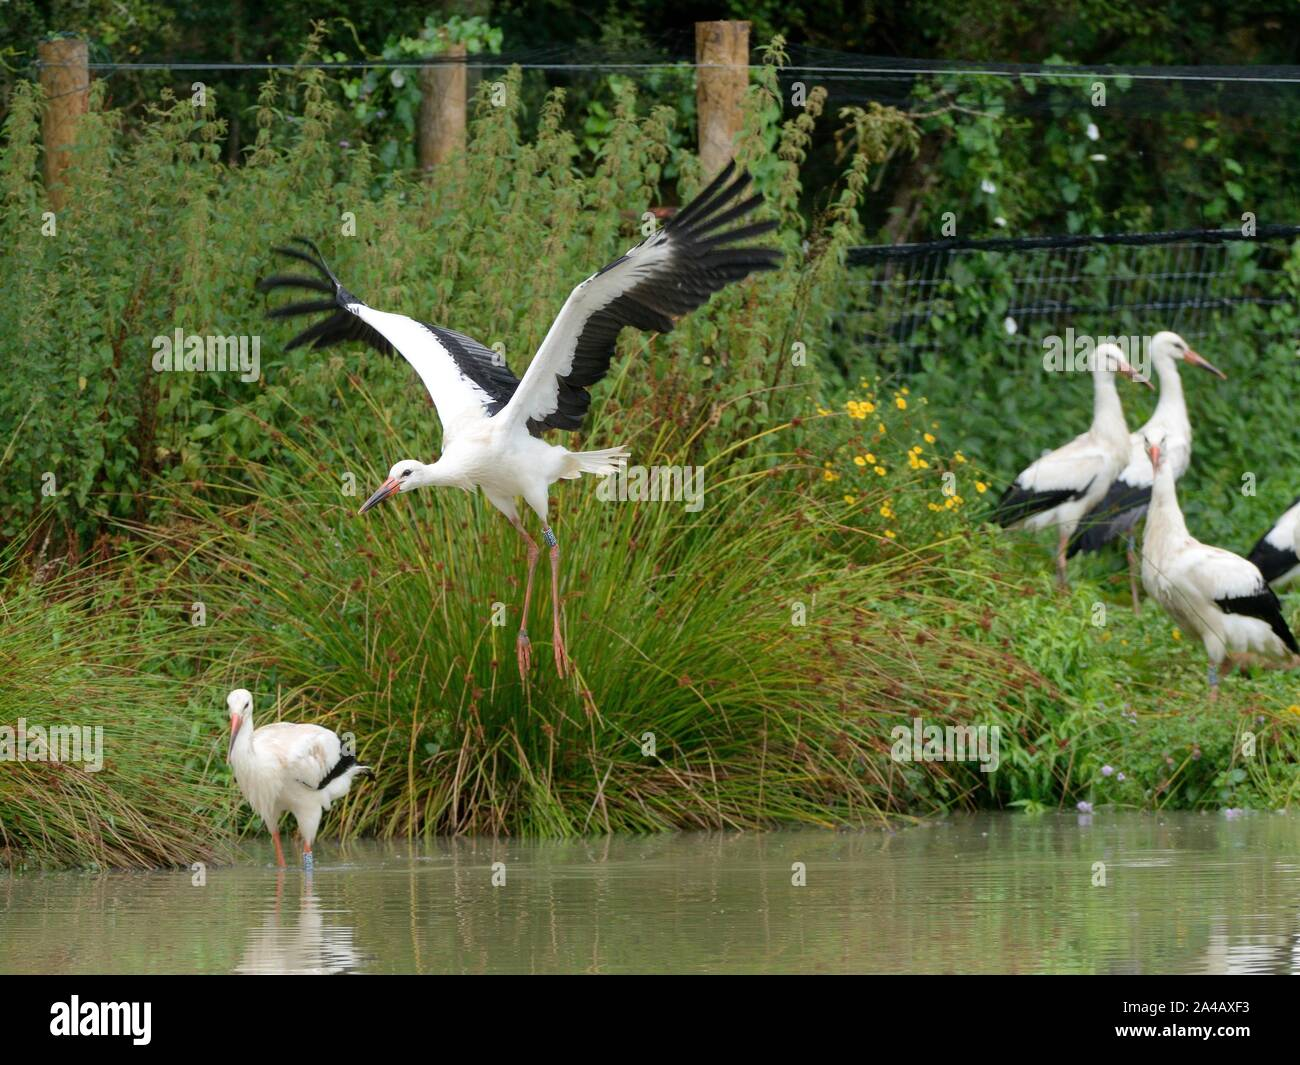 Captive-reared juvenile White storks (Ciconia ciconia) flying and walking from a temporary holding pen on release day on the Knepp Estate, Sussex, UK. Stock Photo